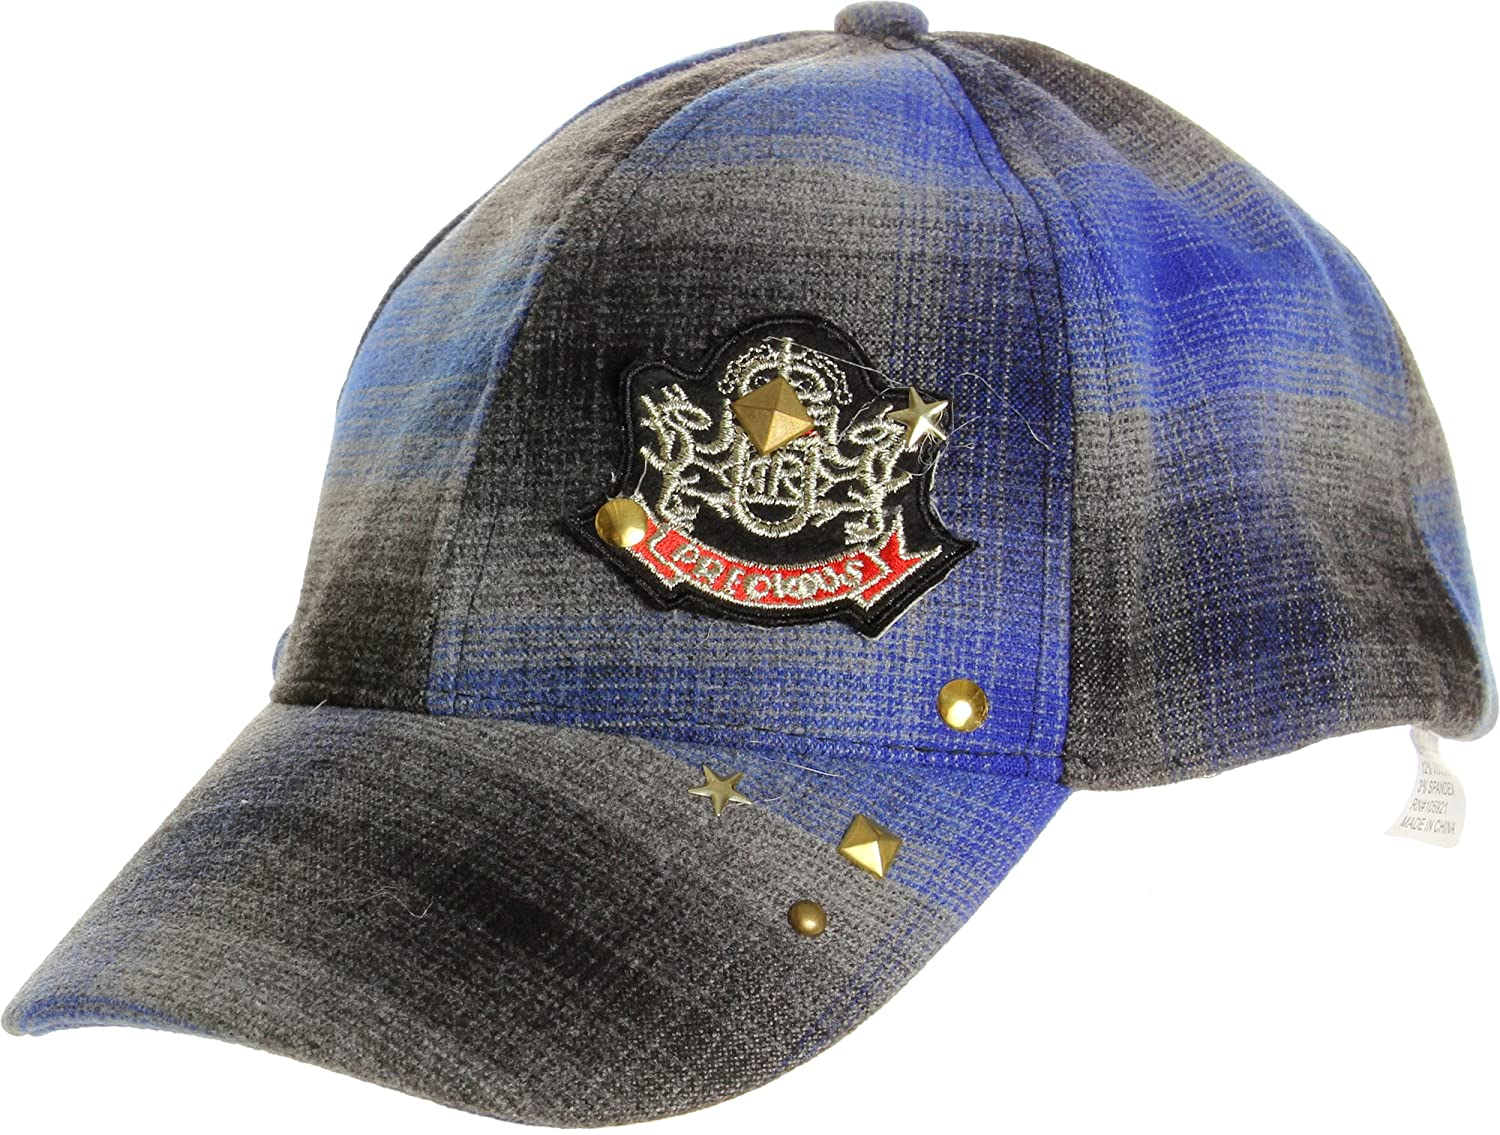 LL Unisex Blue Plaid Baseball Cap Adjustable Embroidered Patch Badge Blue  Lined at Amazon Women s Clothing store  640f7dafe71f